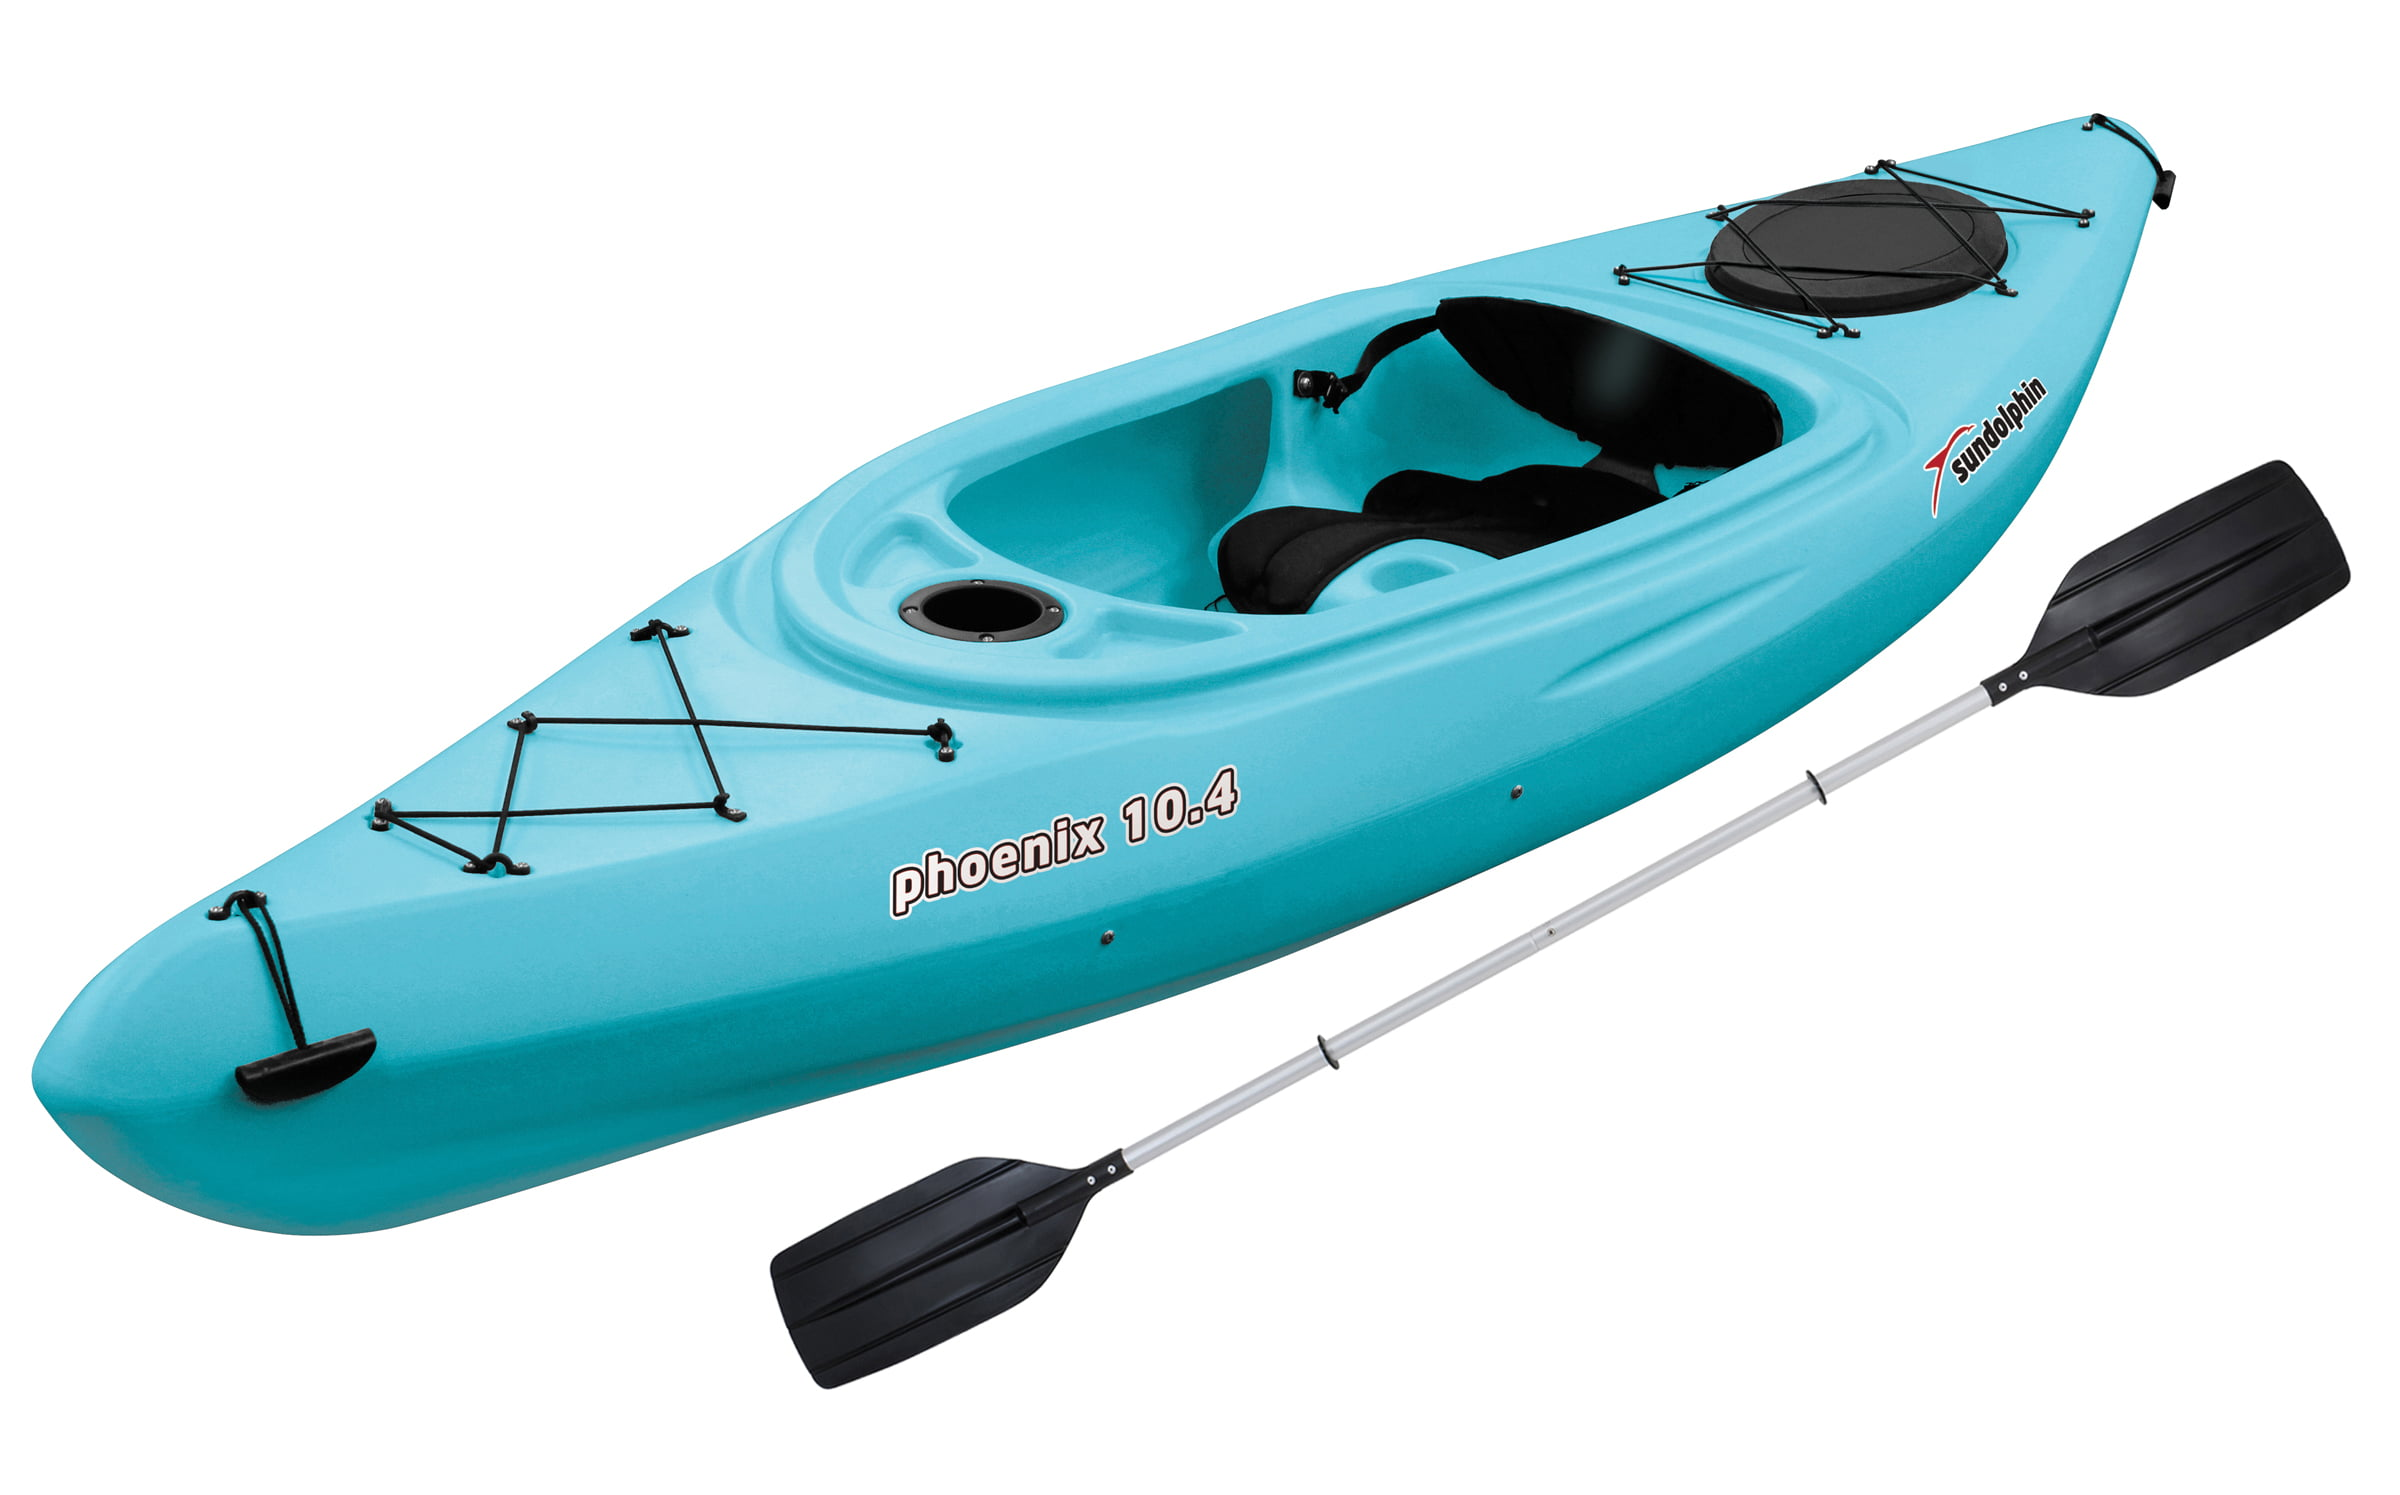 Sun Dolphin Phoenix 10.4 Sit-In Kayak Sea Blue, Paddle Included by KL Outdoor